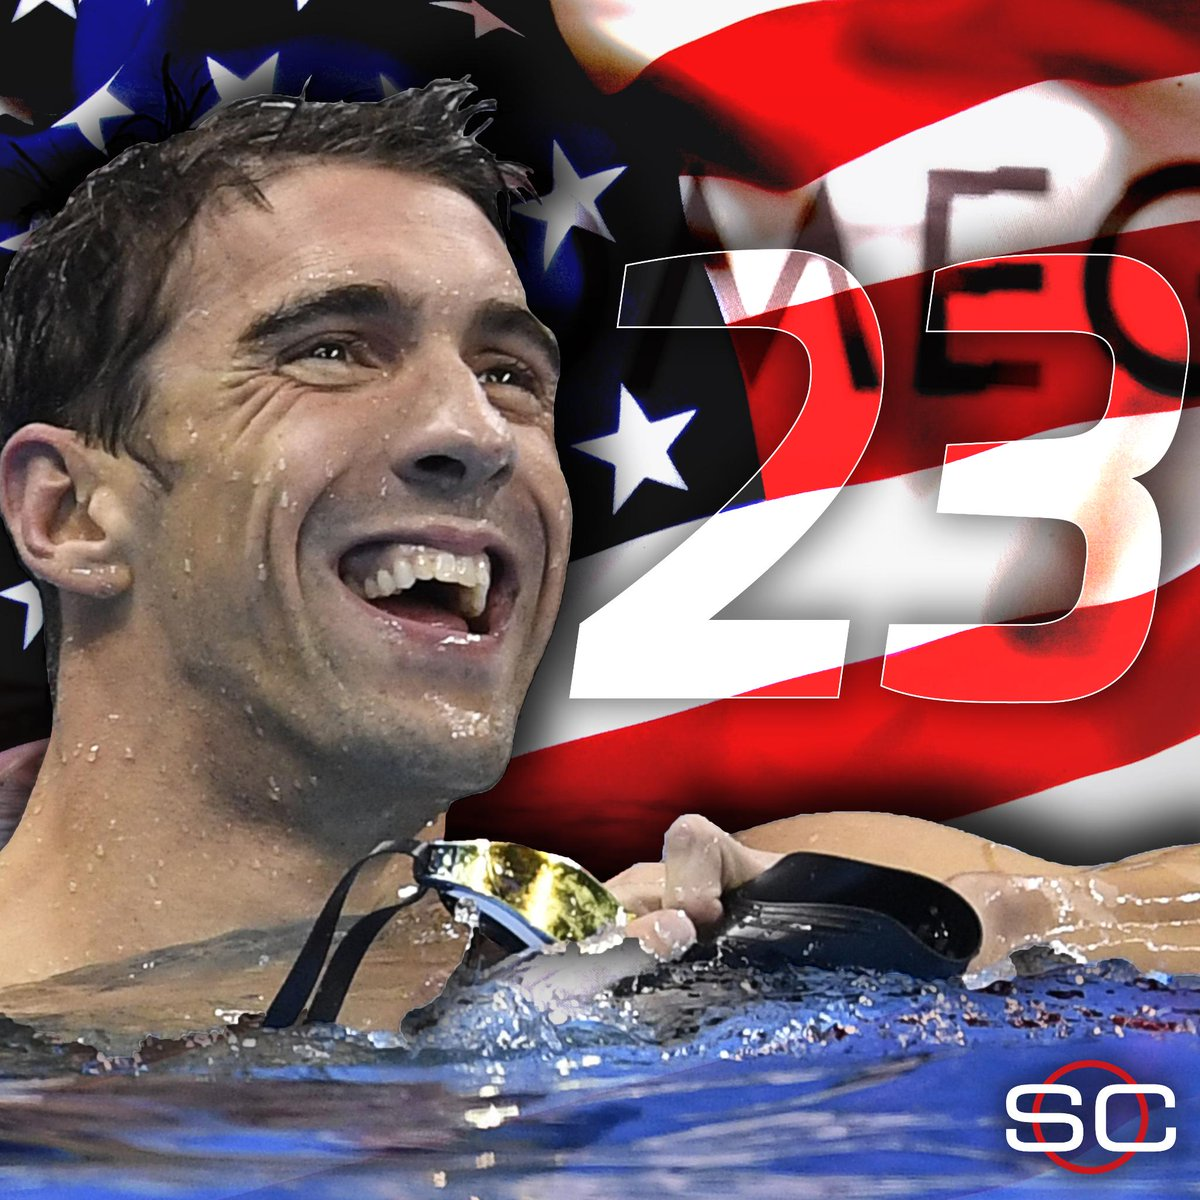 MICHAEL PHELPS FINISHES WITH A GOLD. #USA wins the Men's 4x100m Medley Relay to give the legend one final victory.